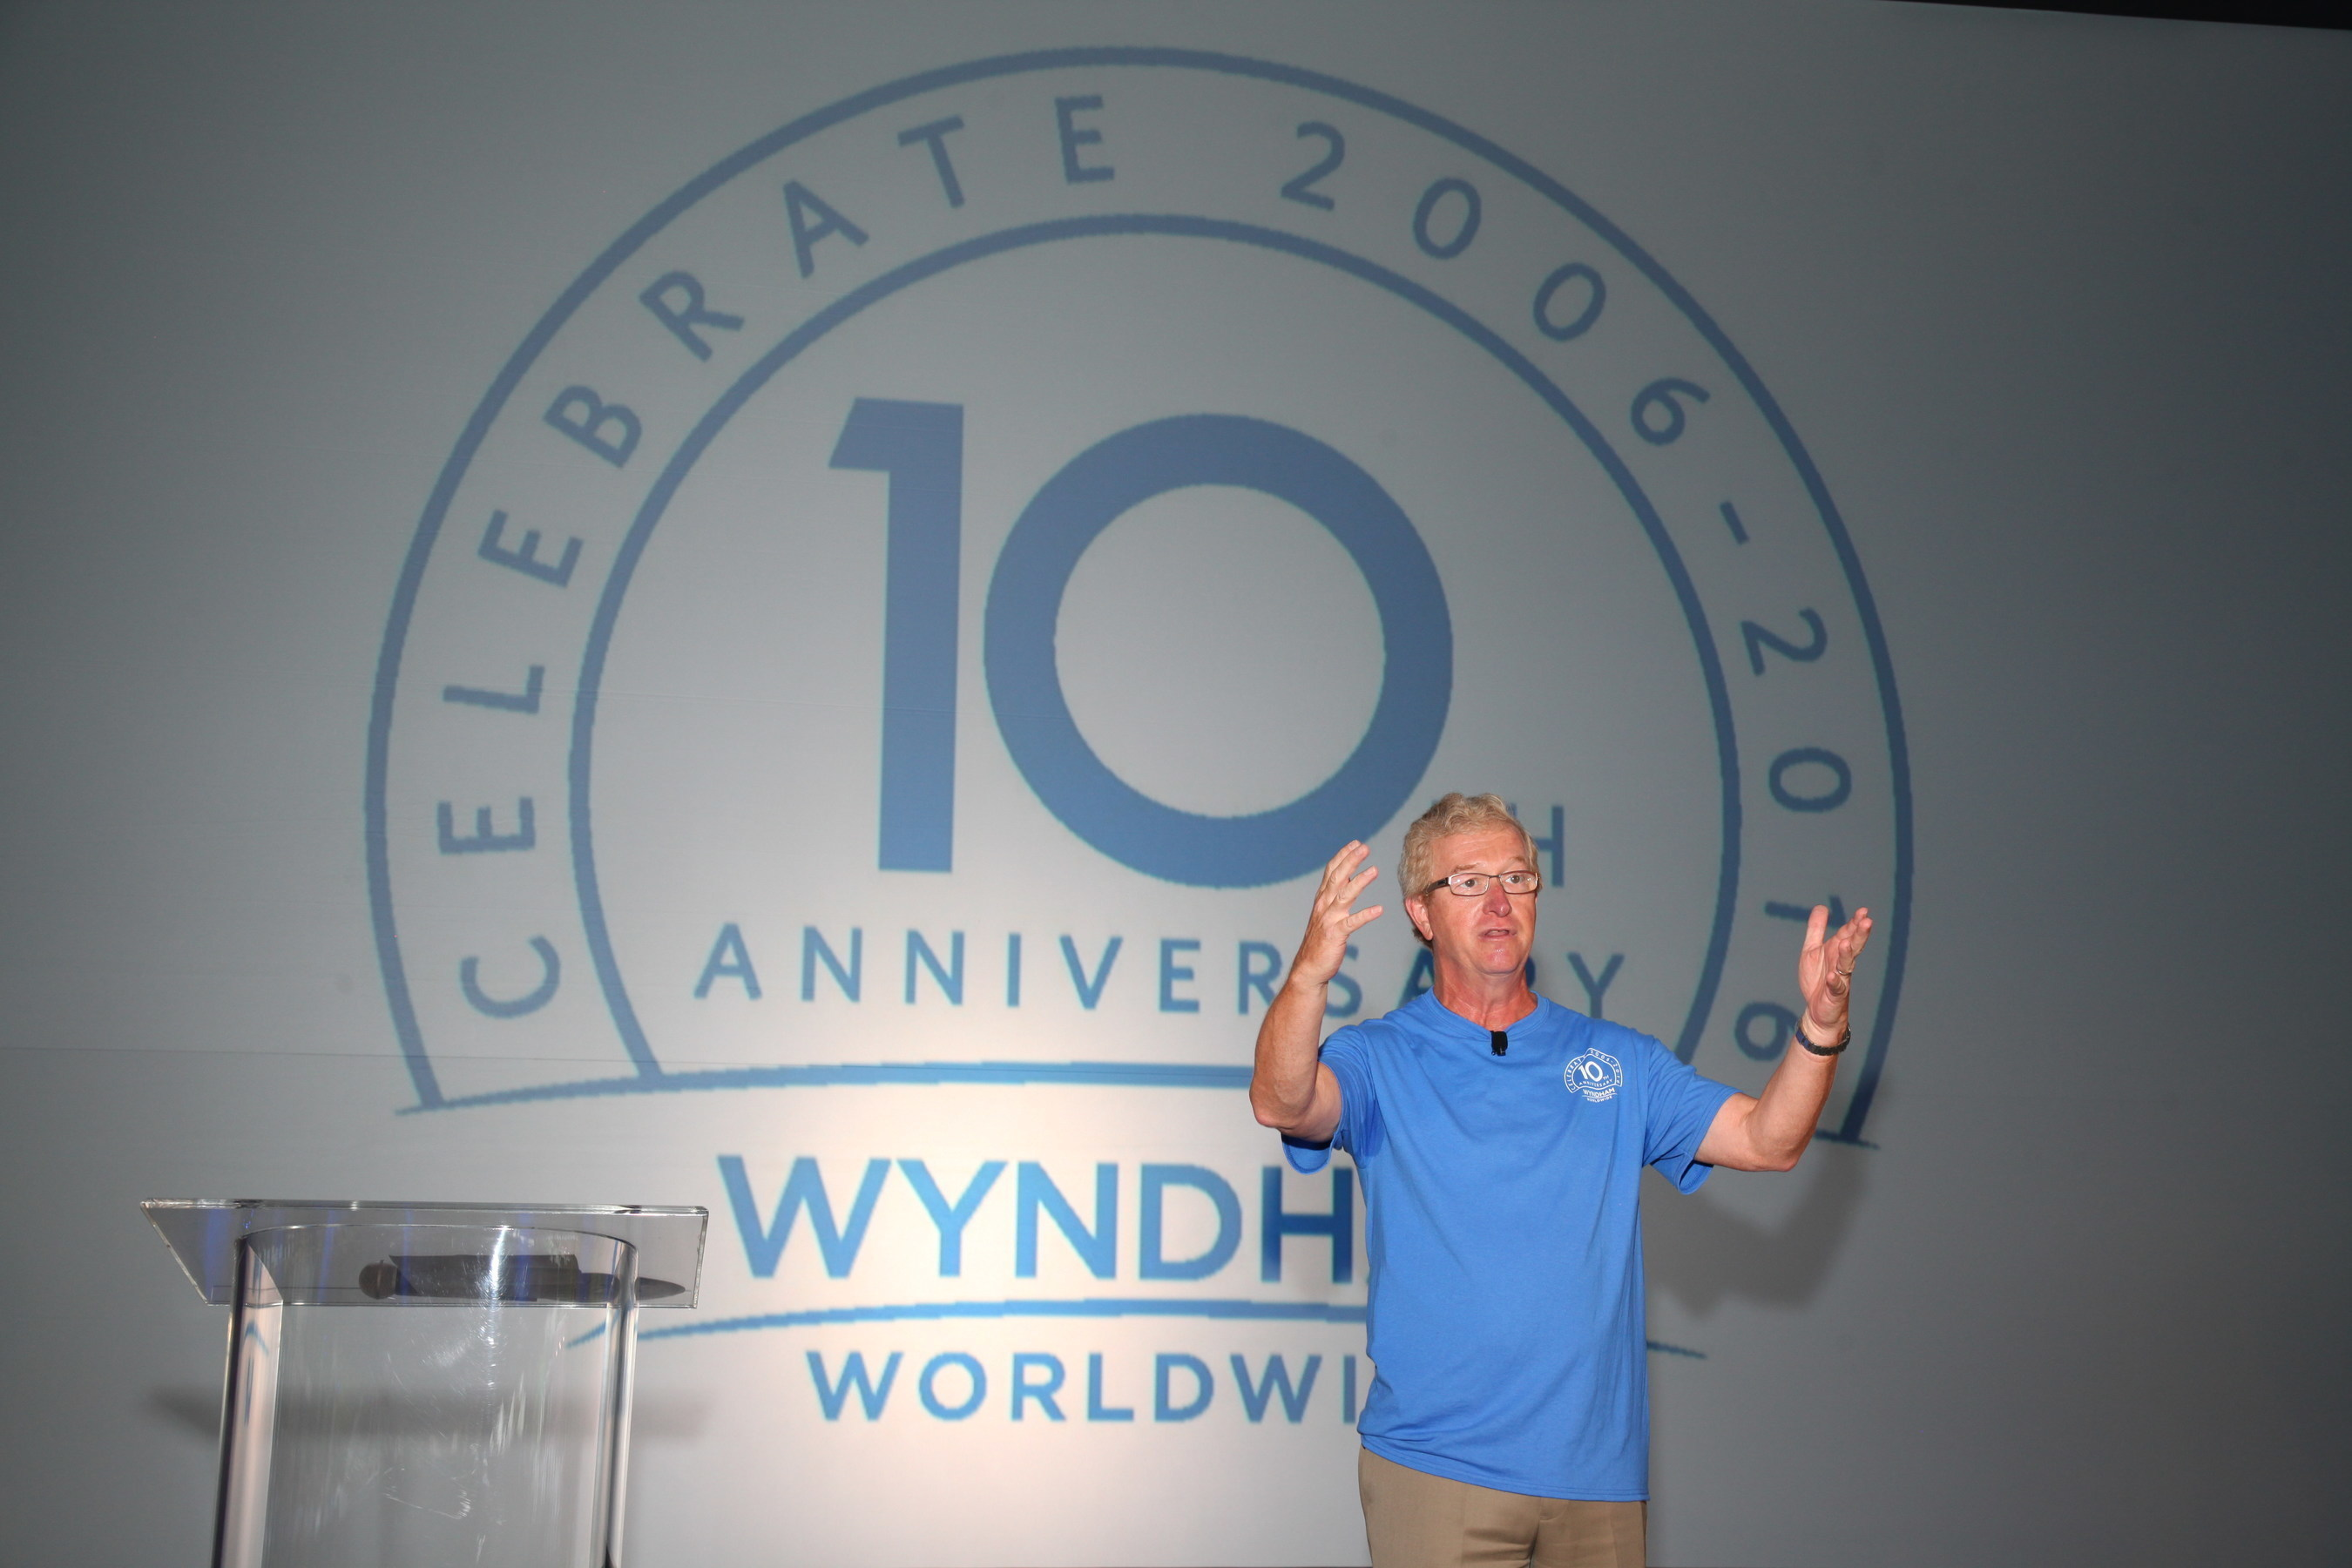 Wyndham Worldwide Chairman and Chief Executive Officer Stephen P. Holmes welcomes associates at a special 10 year anniversary celebration announcing its new global partnership with Save the Children at the company's global headquarters in Parsippany, NJ.